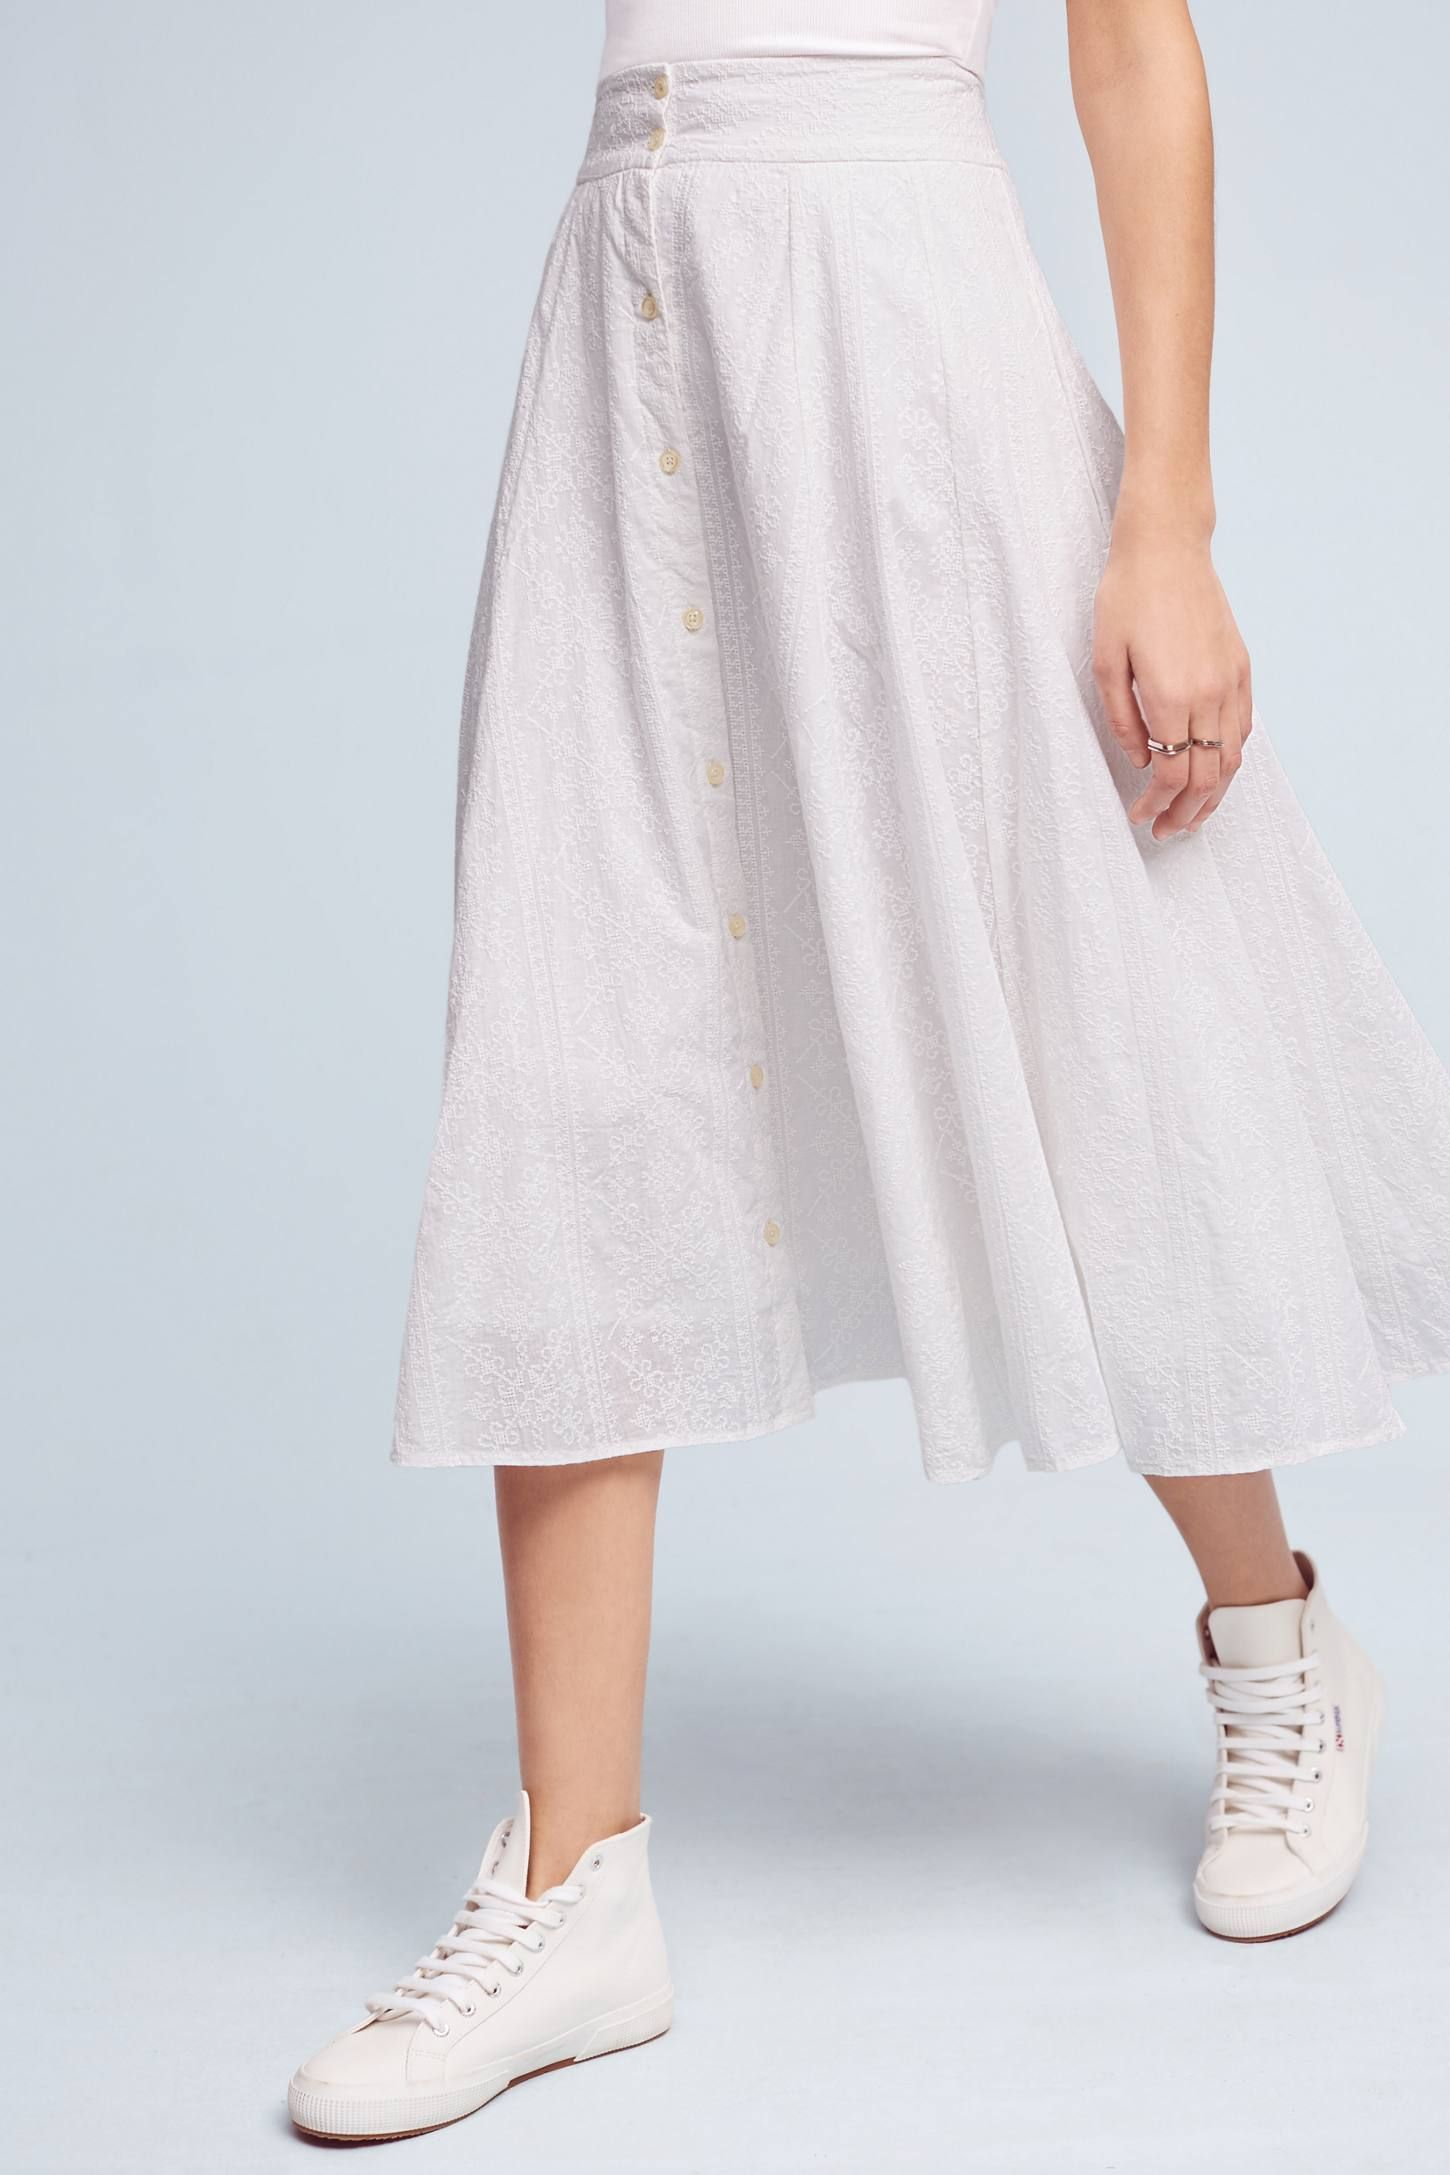 Cannes Midi Skirt | Shops, Skirts and 1